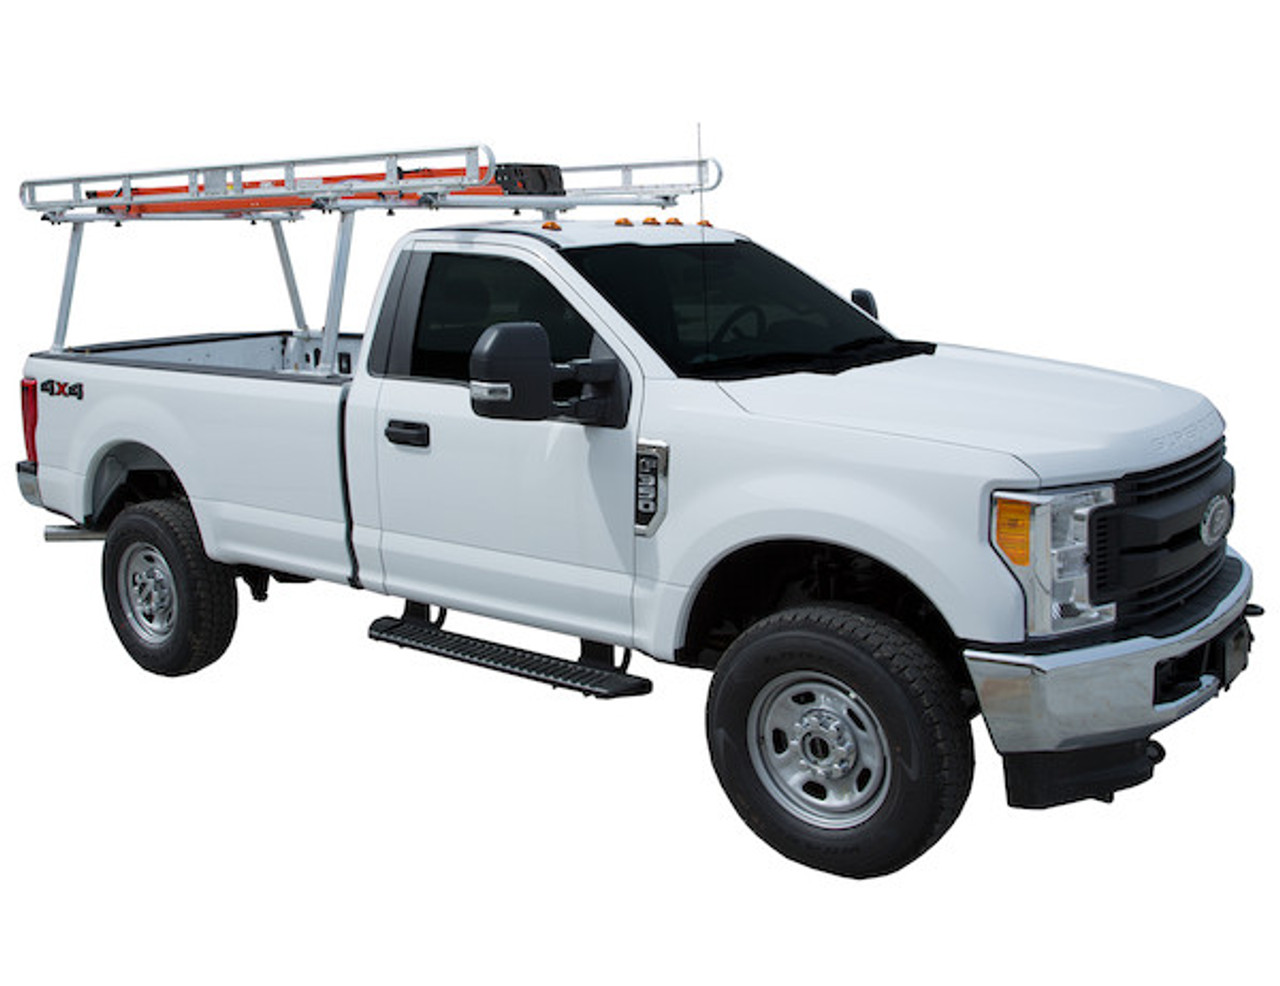 BUYERS 1501400 Clear Anodized Aluminum Truck Ladder Rack Picture # 1